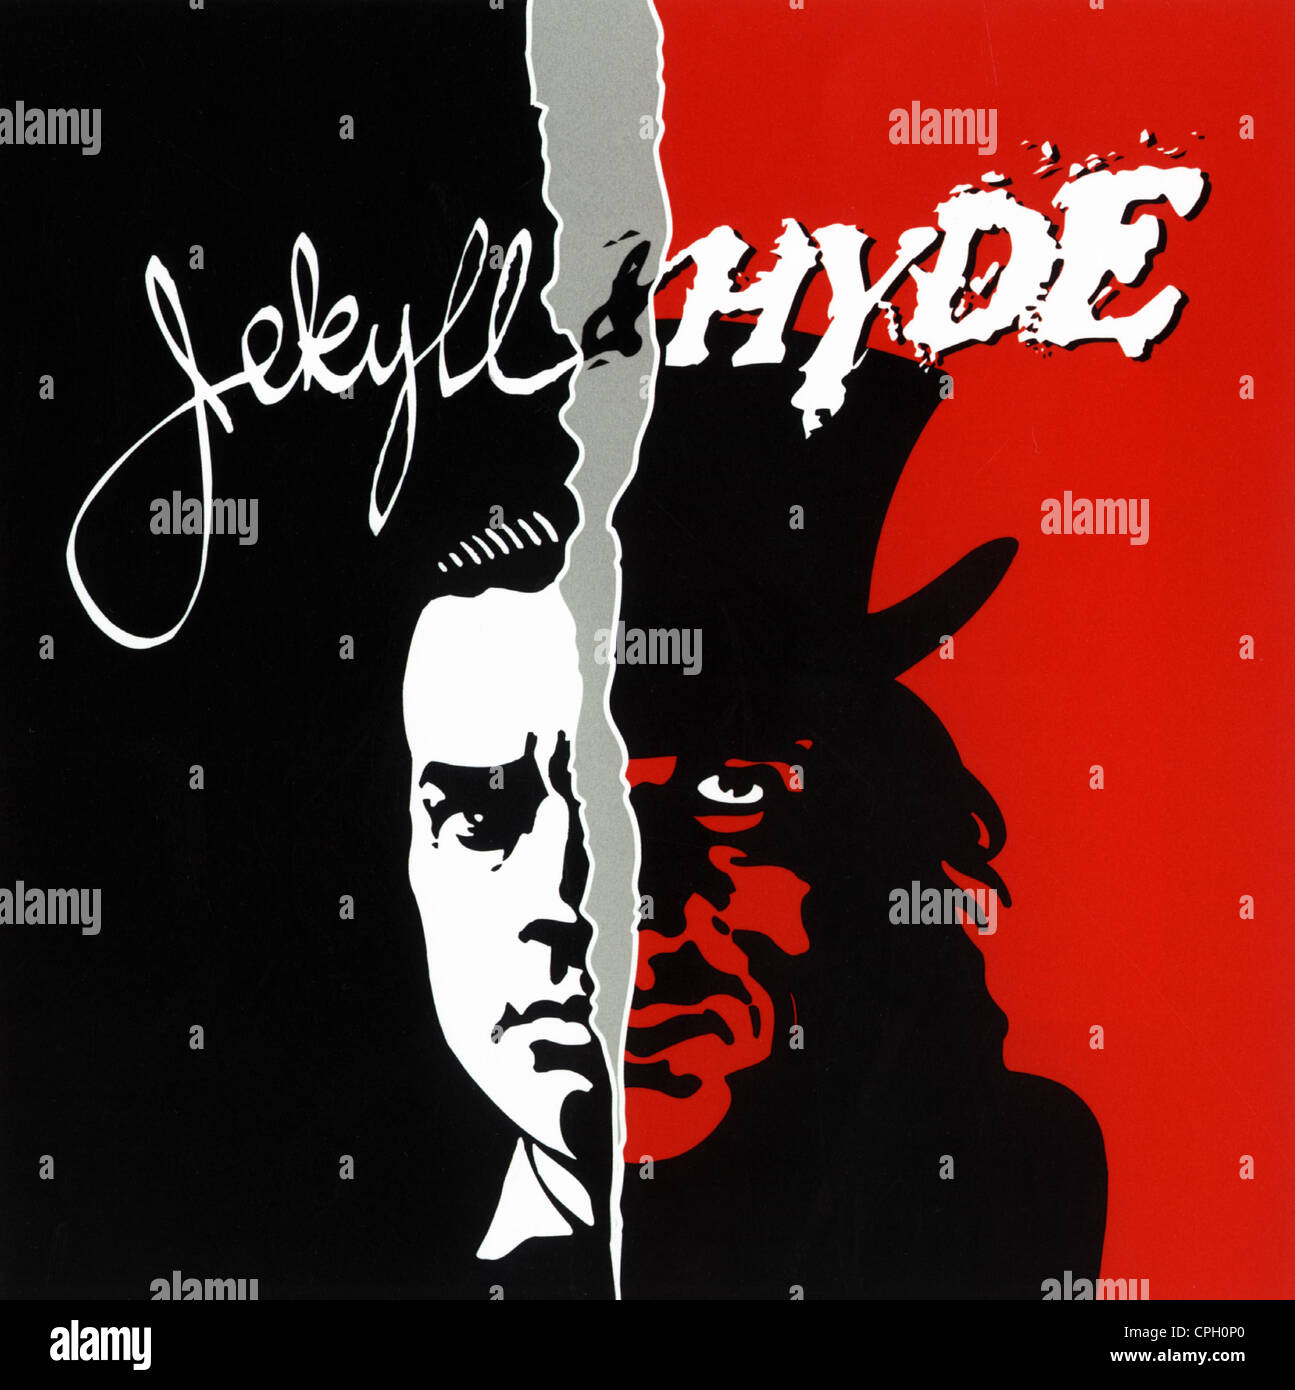 a comparison of dr jekyll and mr hyde two sides of the same character in the novella strange case of